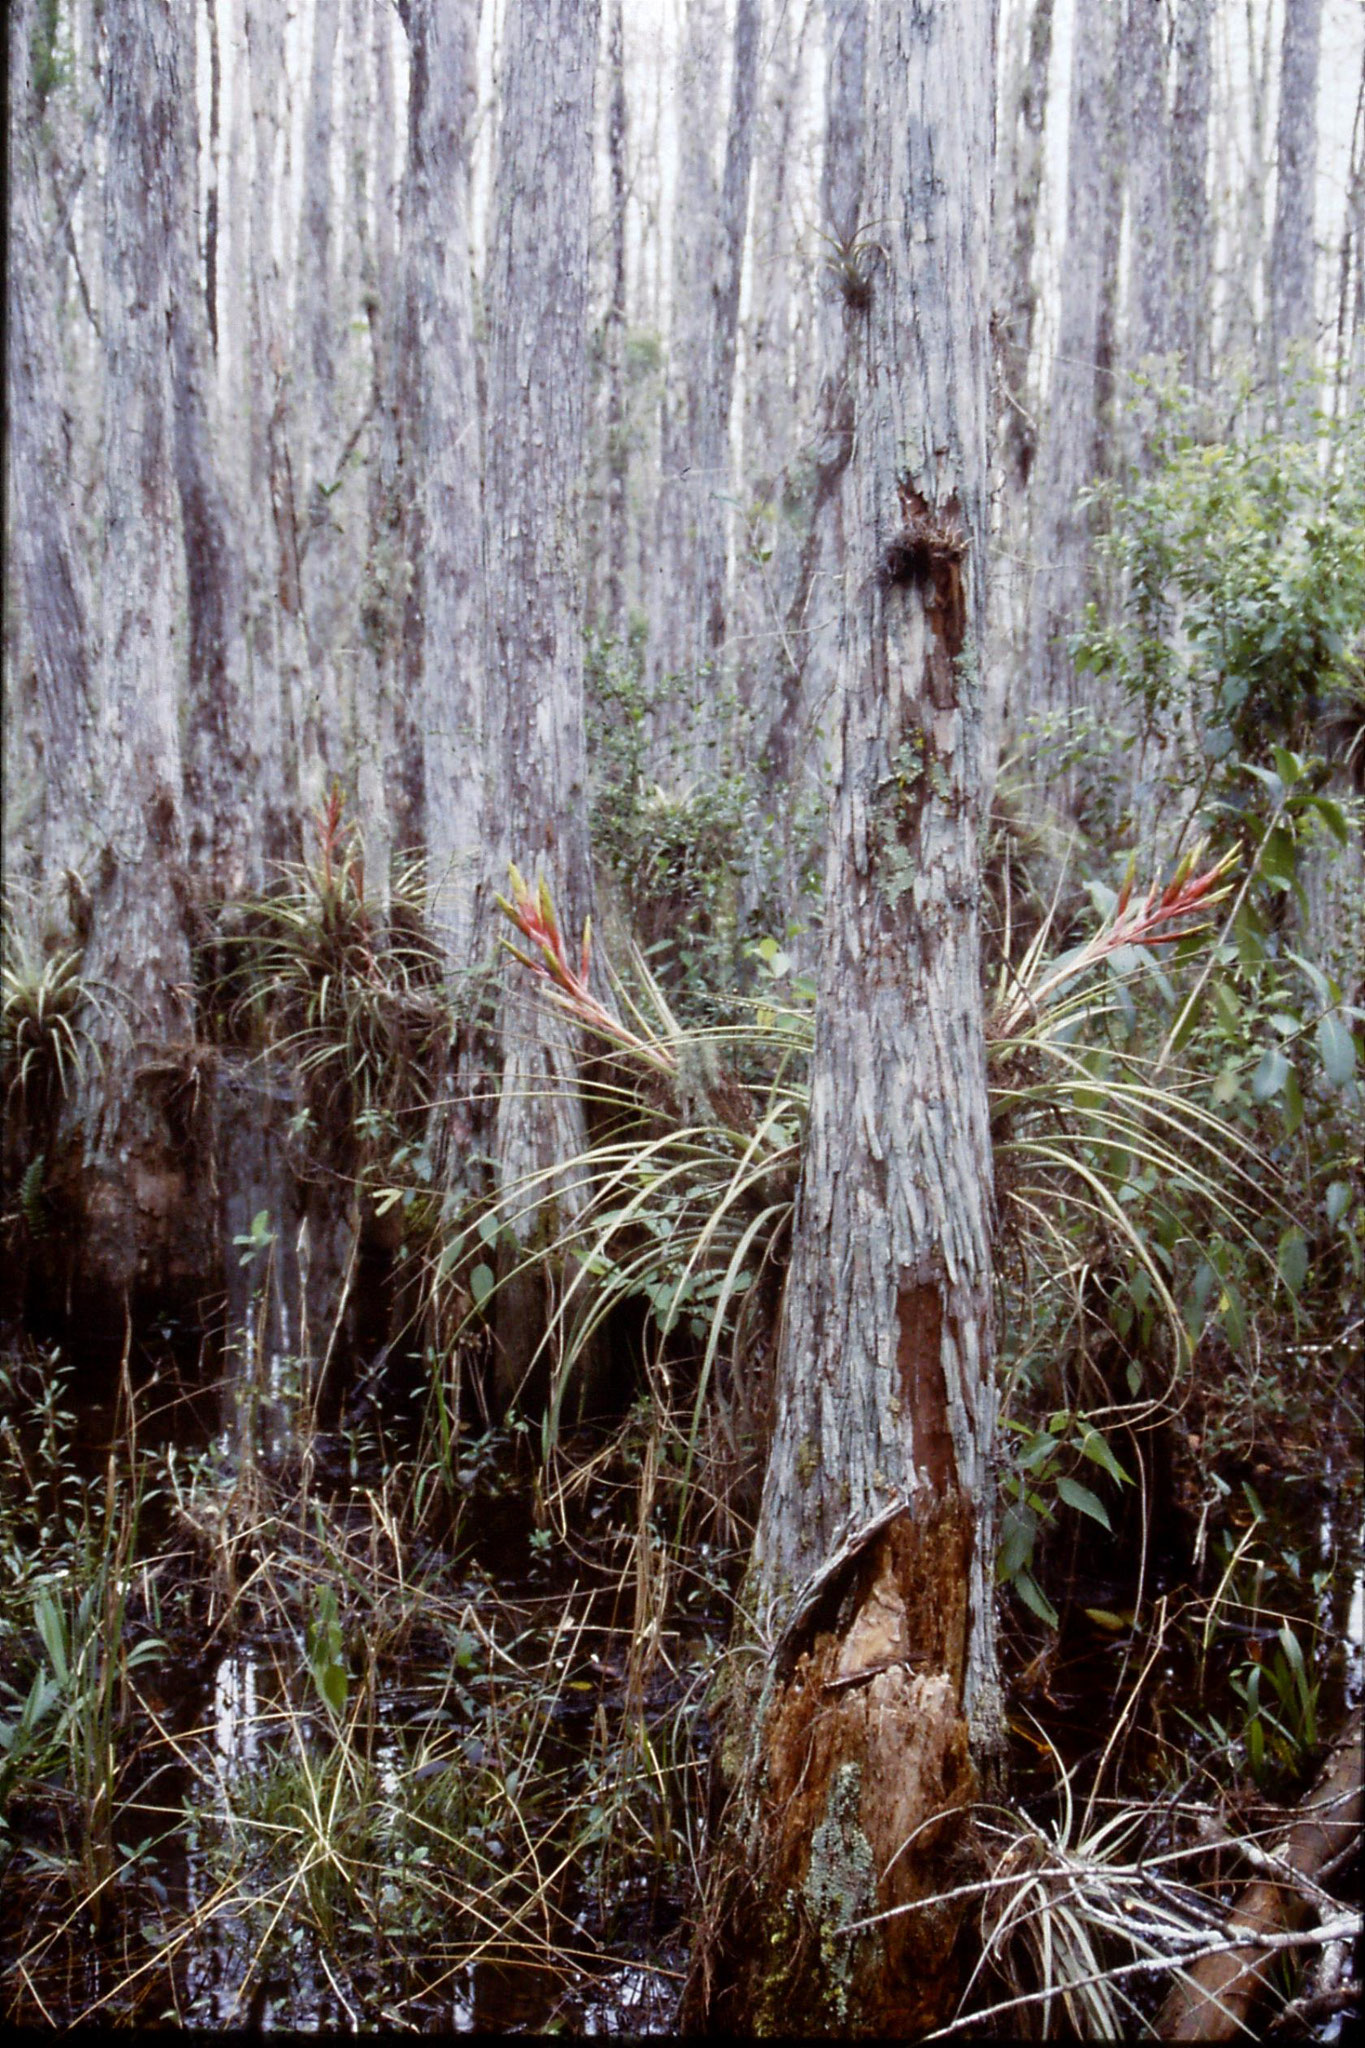 25/2/1991: 15: Corkscrew Swamp